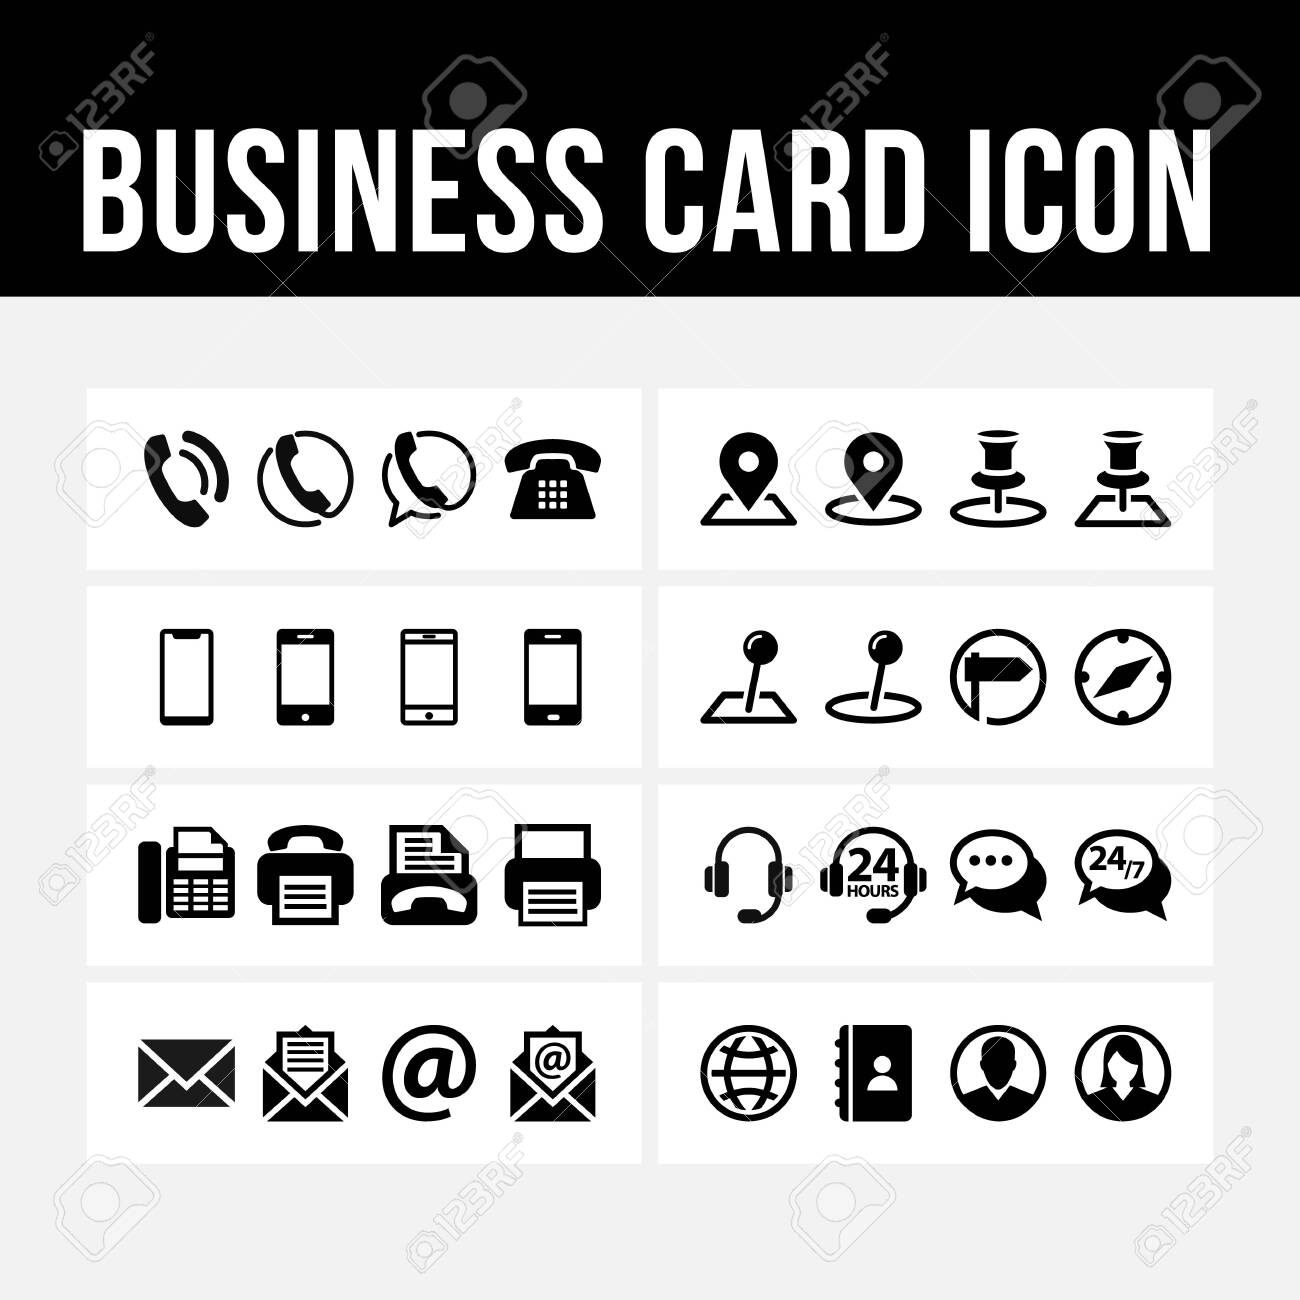 Business card icon contact symbol vector image - 129786667